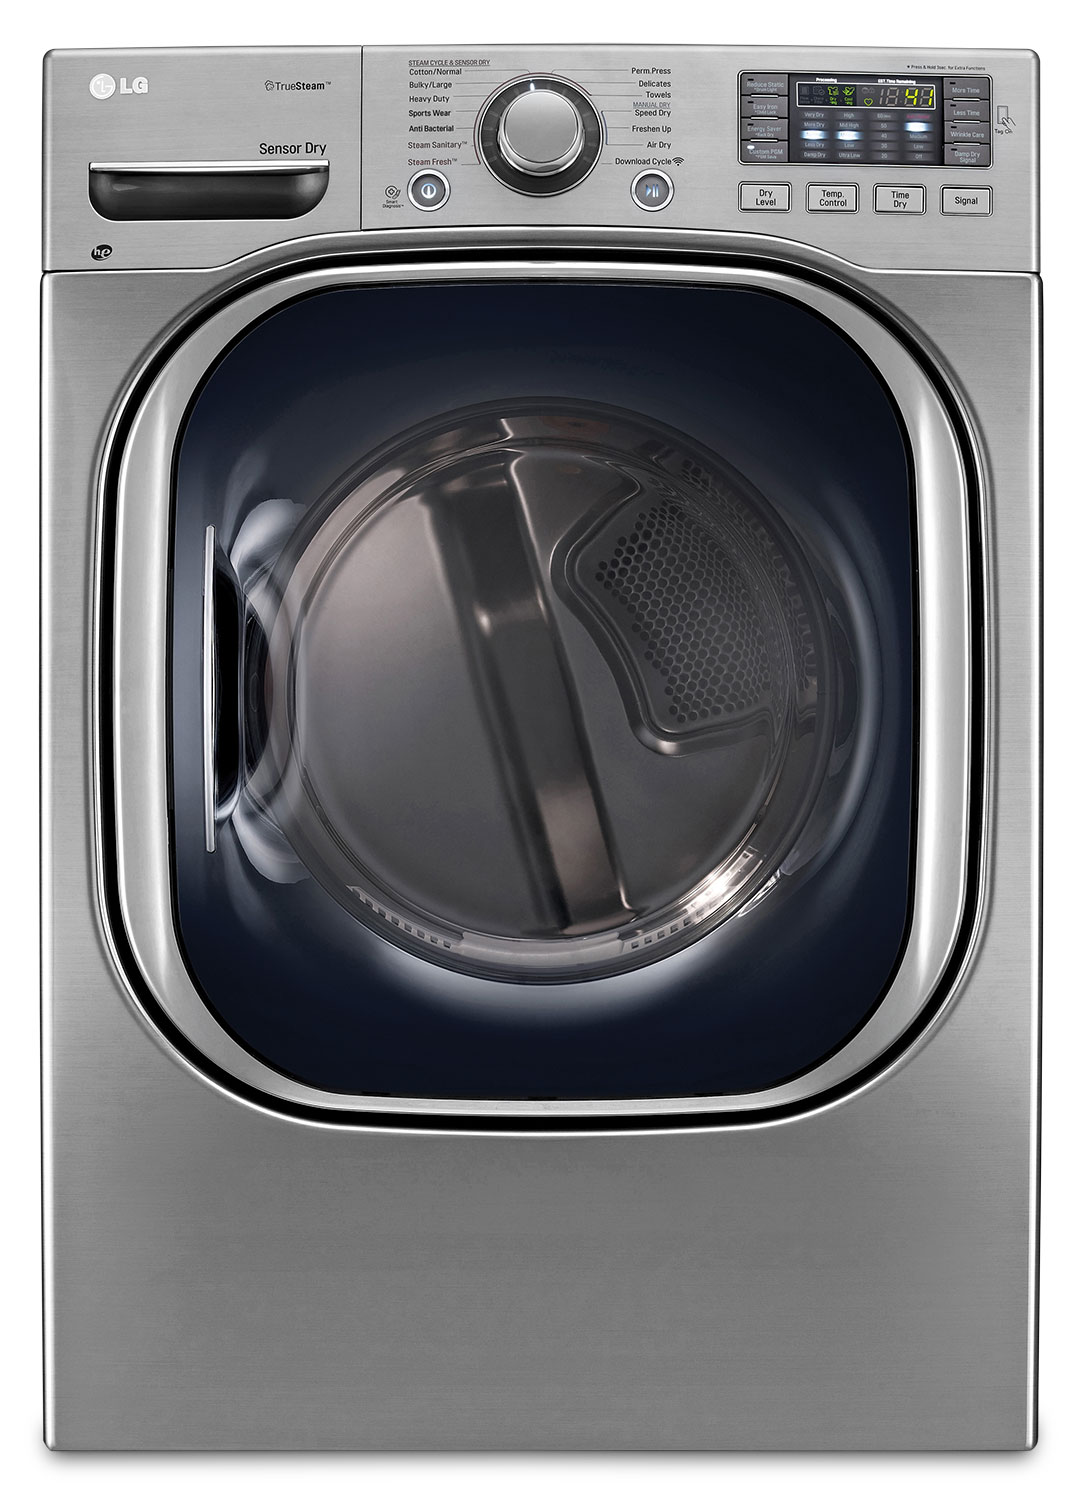 Washers and Dryers - LG 7.4 Cu. Ft. Electric SteamDryer™ - Graphite Steel